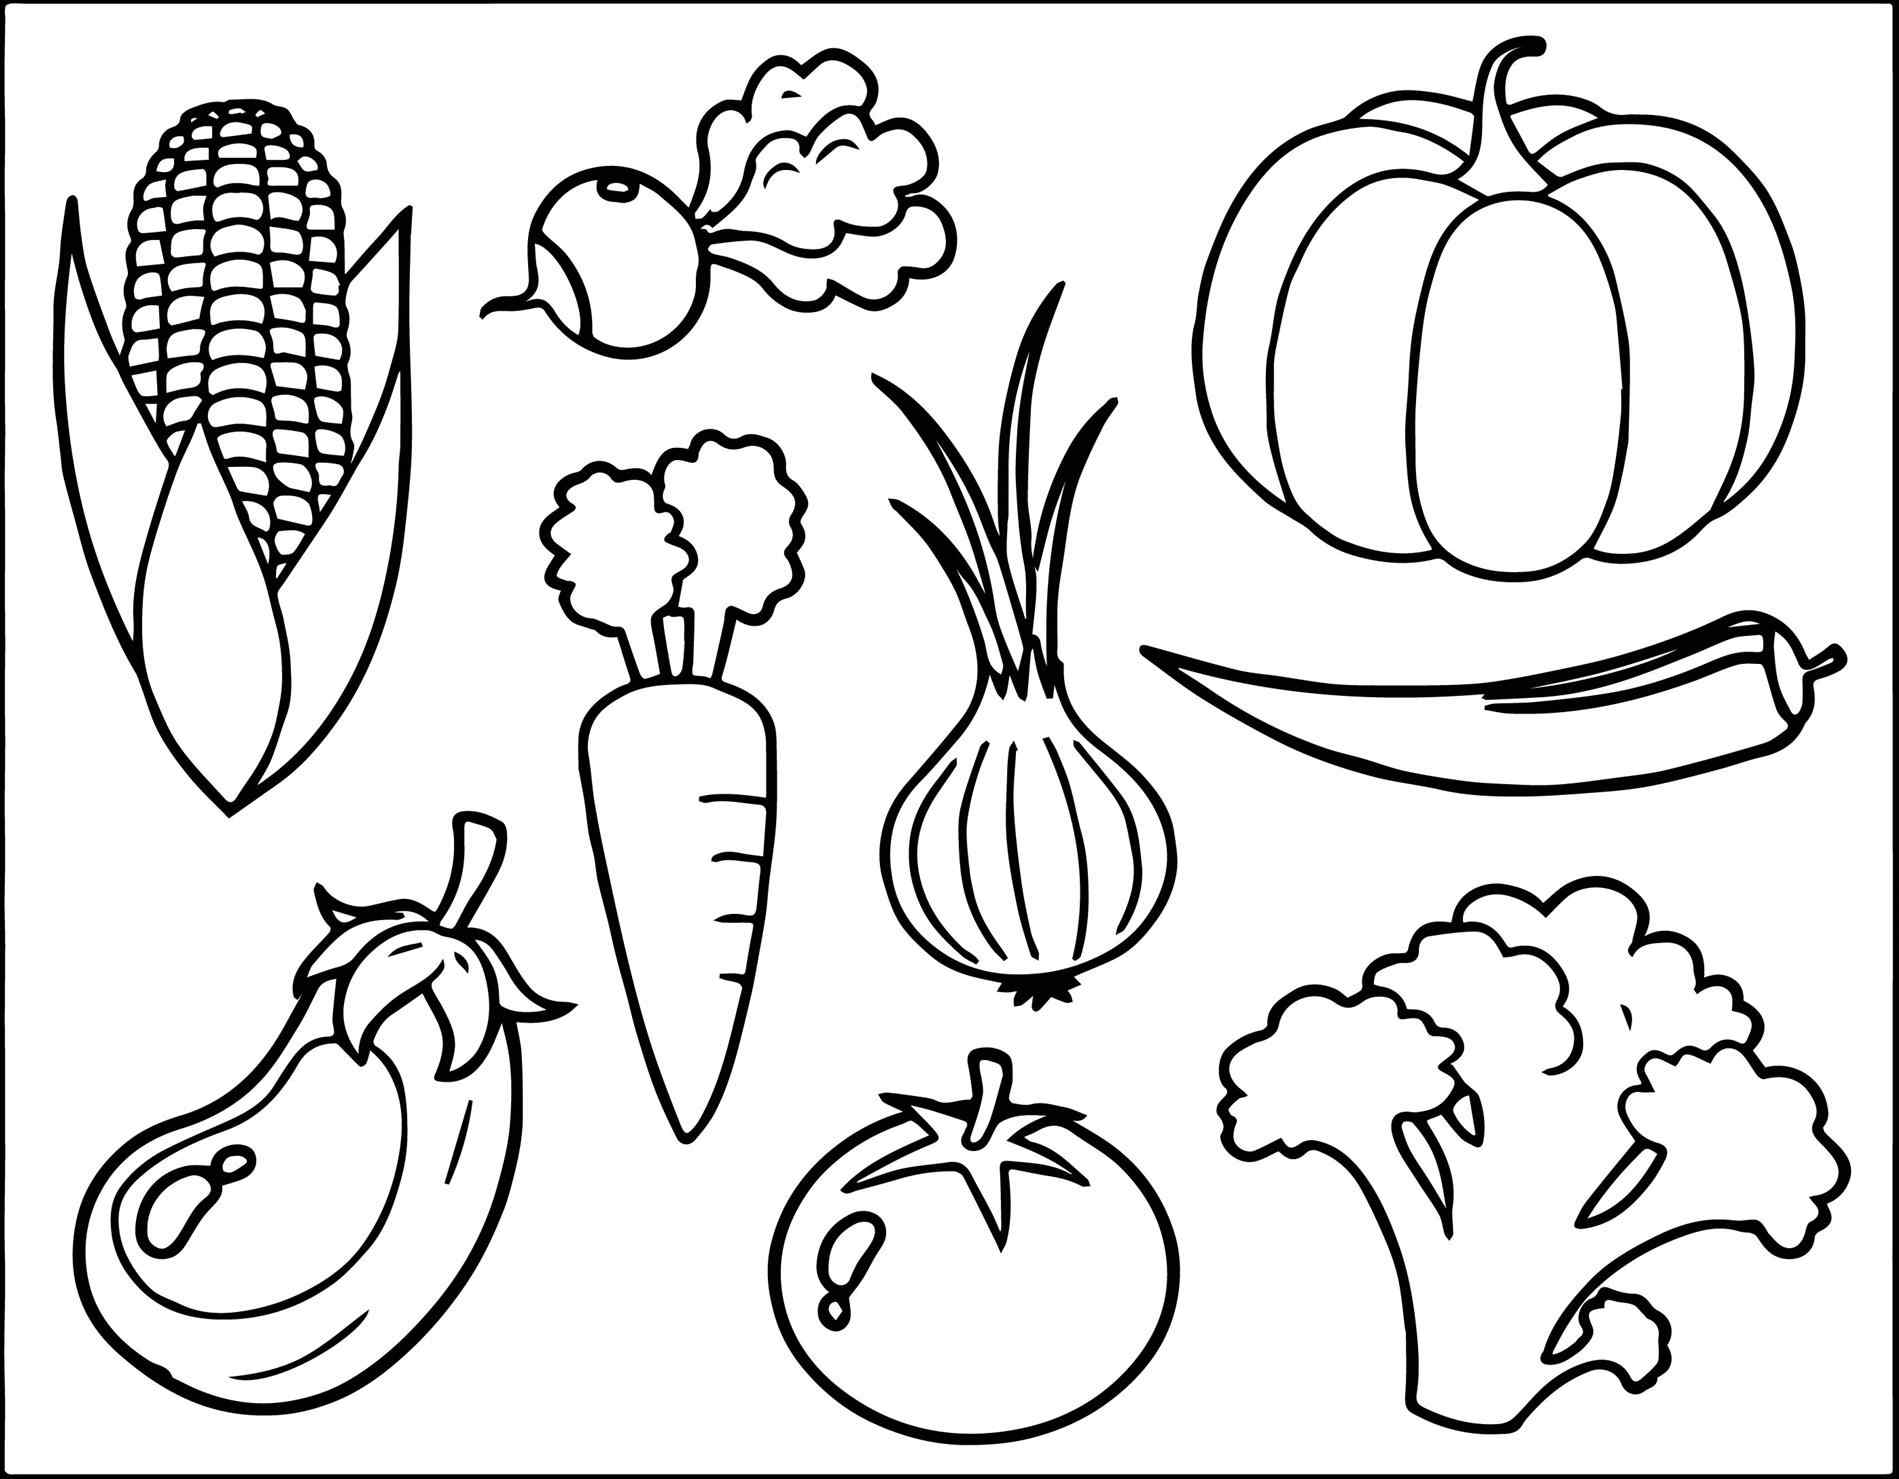 coloring food pages cute food coloring pages coloring pages to download and coloring pages food